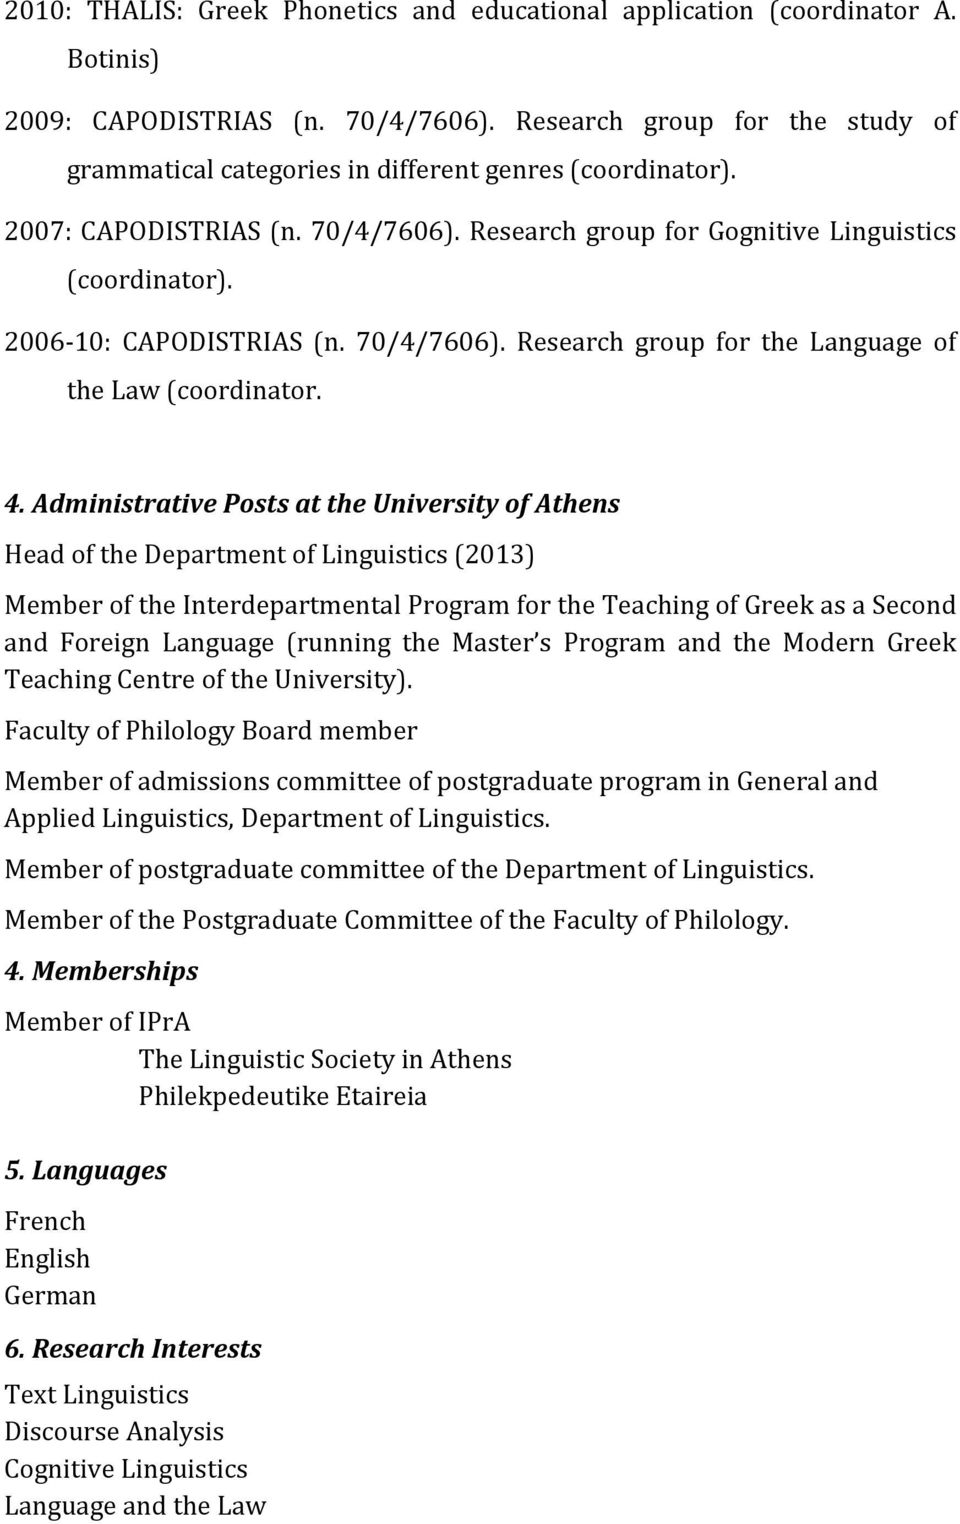 2006-10: CAPODISTRIAS (n. 70/4/7606). Research group for the Language of the Law (coordinator. 4.